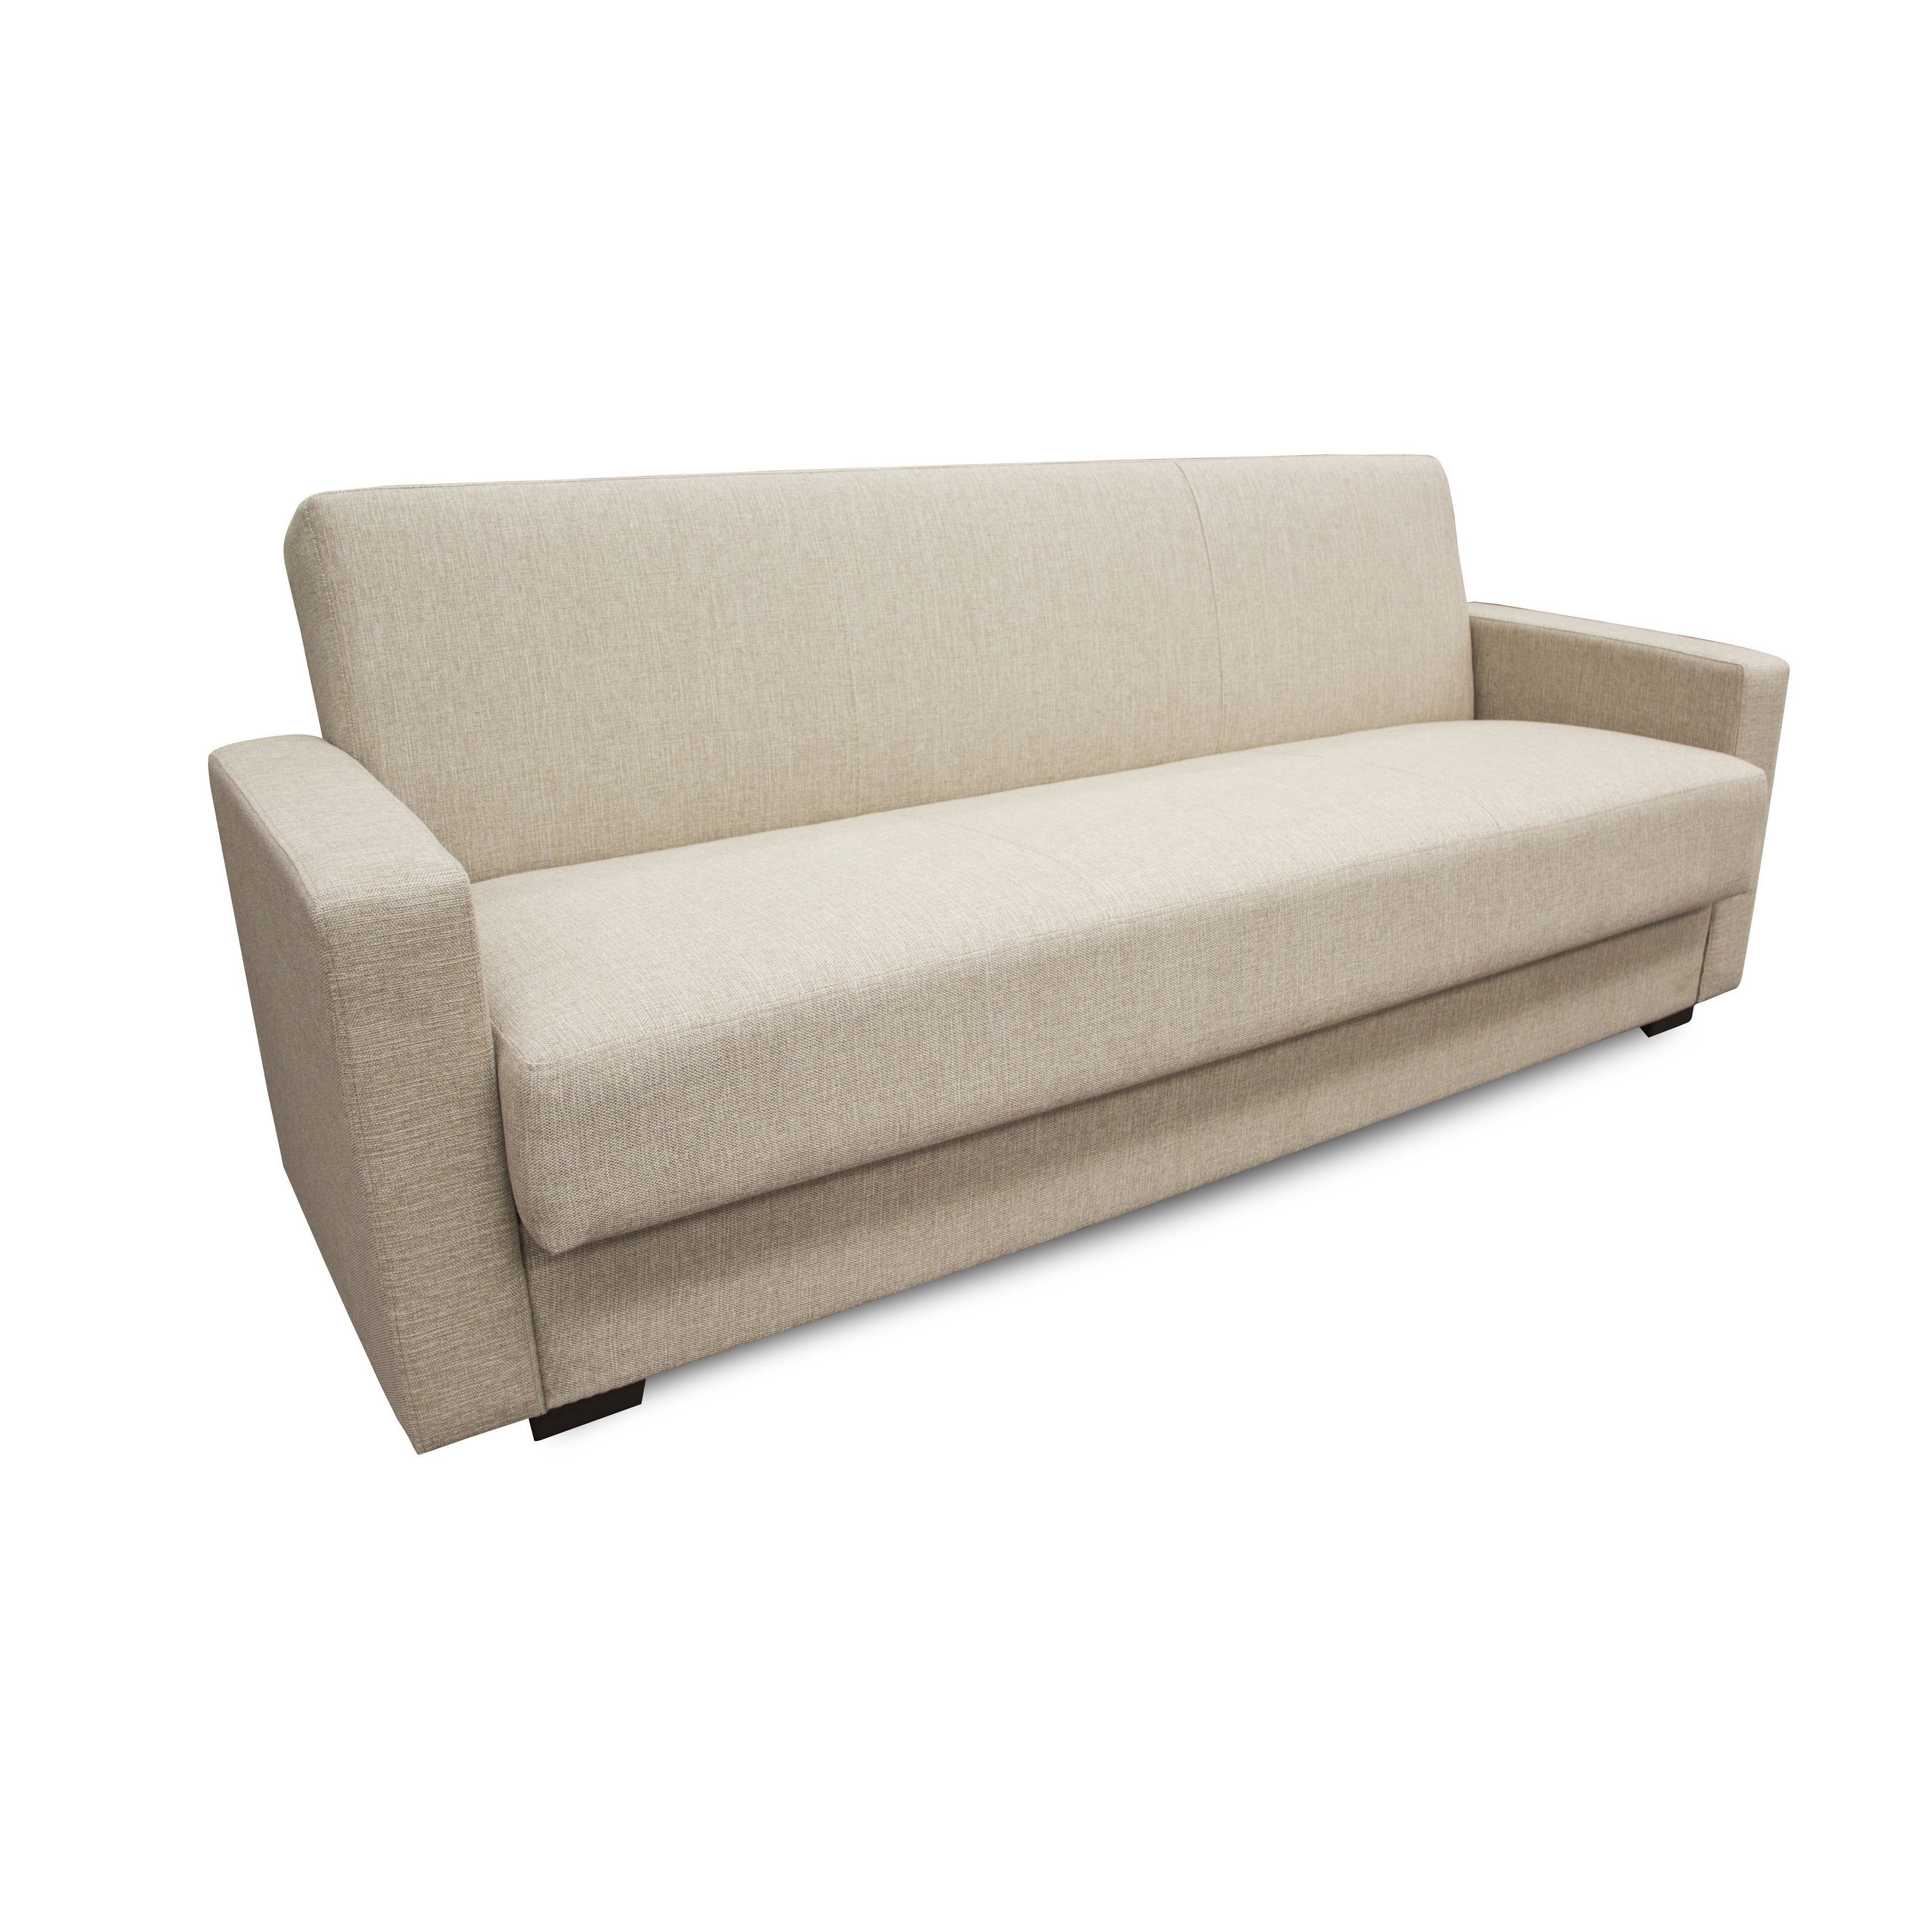 This stylish sofa bed will add convenience and modern flair to your living room. The sofa seat lies flat to convert to a bed for the night. The sofa has a storage compartment beneath the cushion to store extra pillows and blankets.